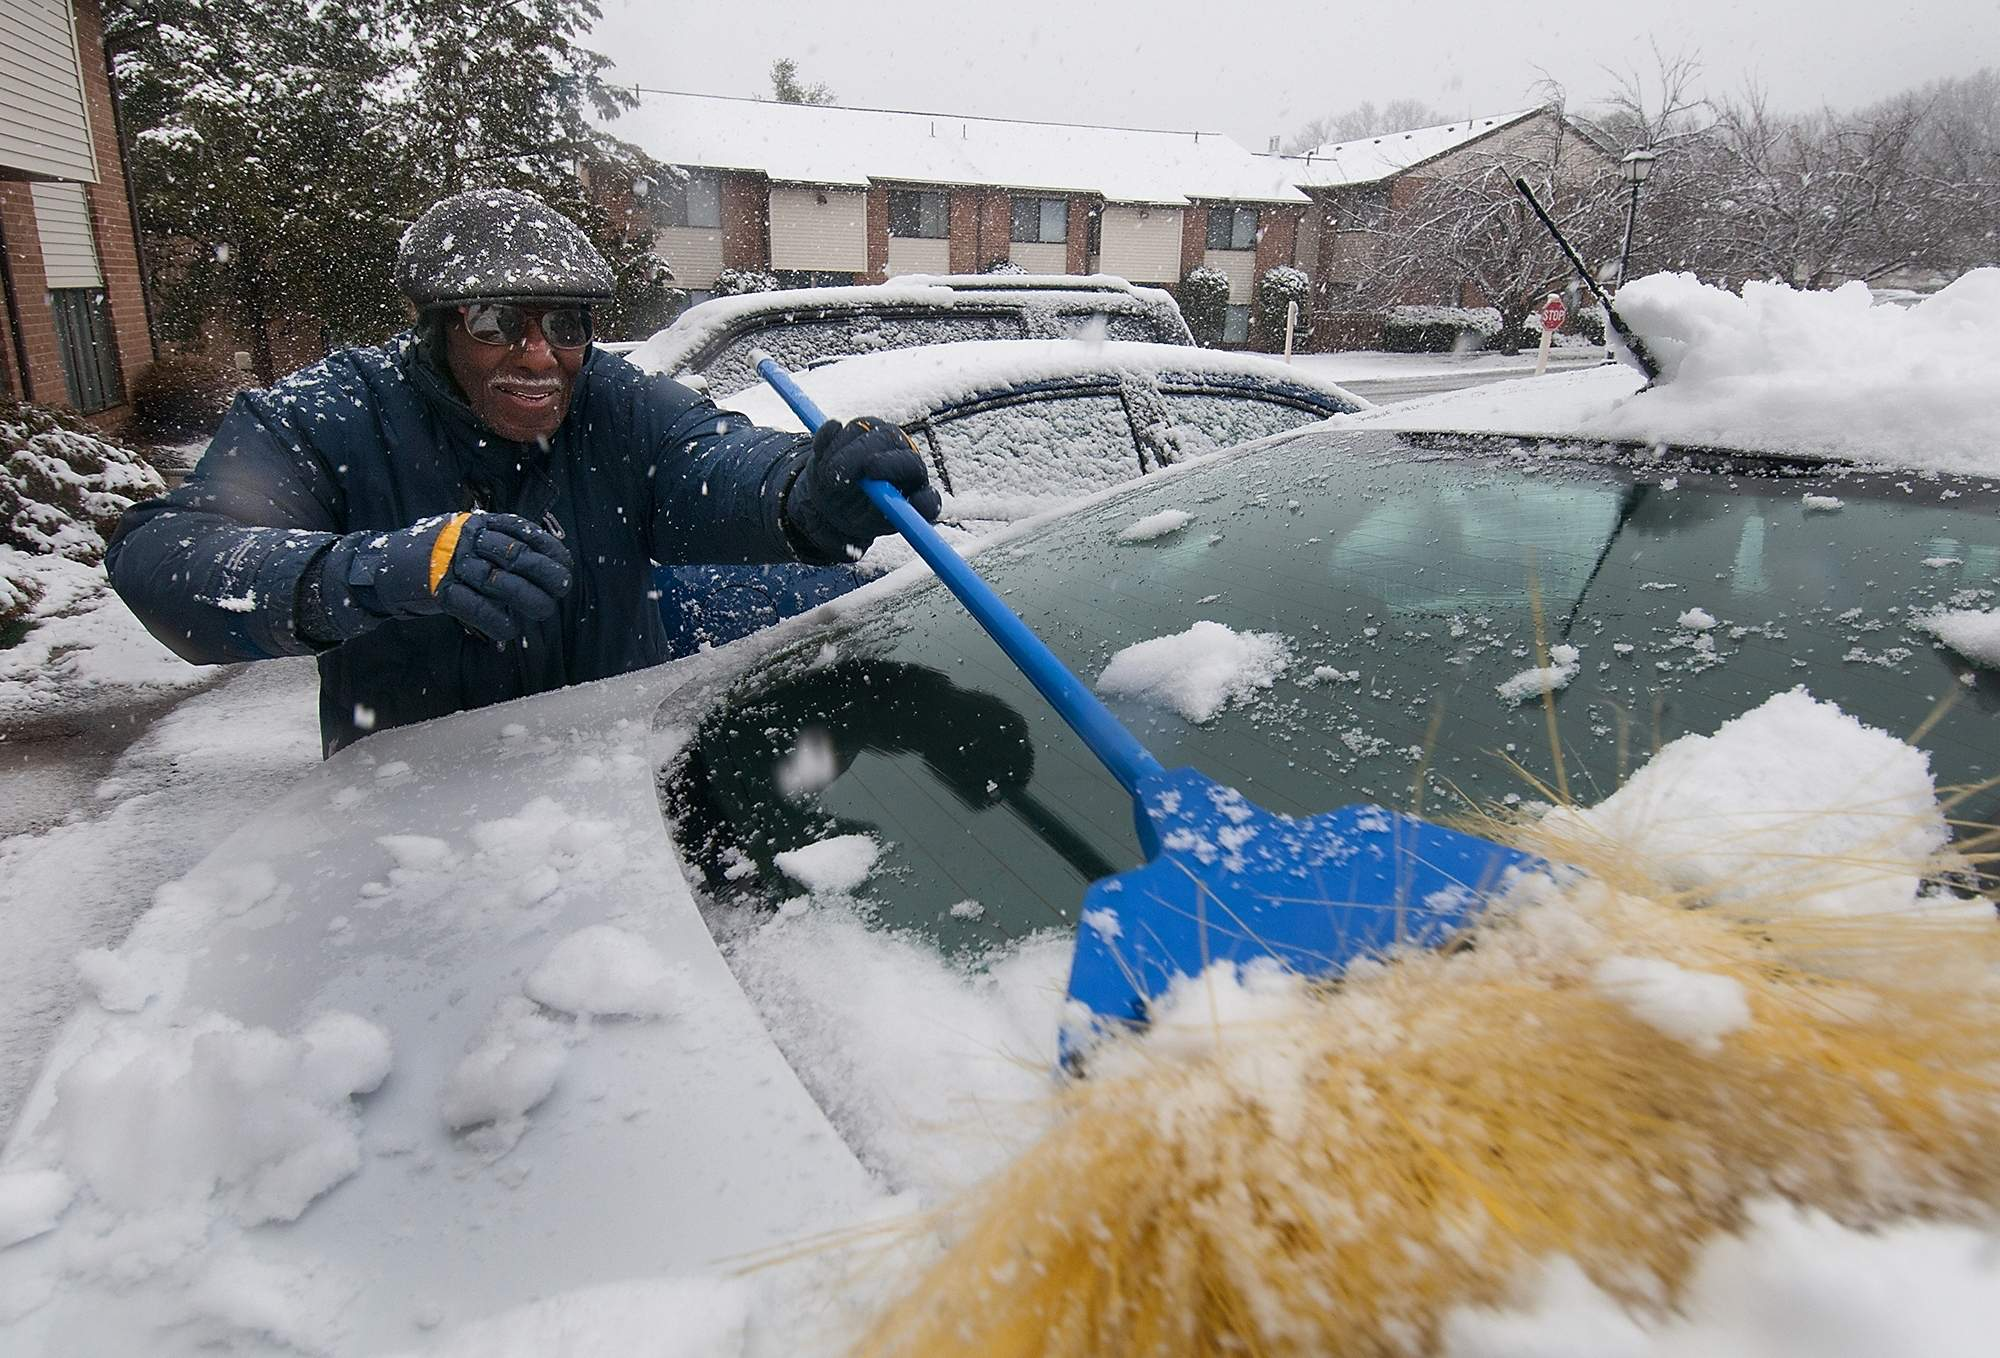 John Moore clears snow from his car before driving to Perkins for breakfast from The Glen at Bucks apartments during the second nor'easter Wednesday, March 7, 2018 in Warminster. [BILL FRASER / STAFF PHOTOJOURNALIST]